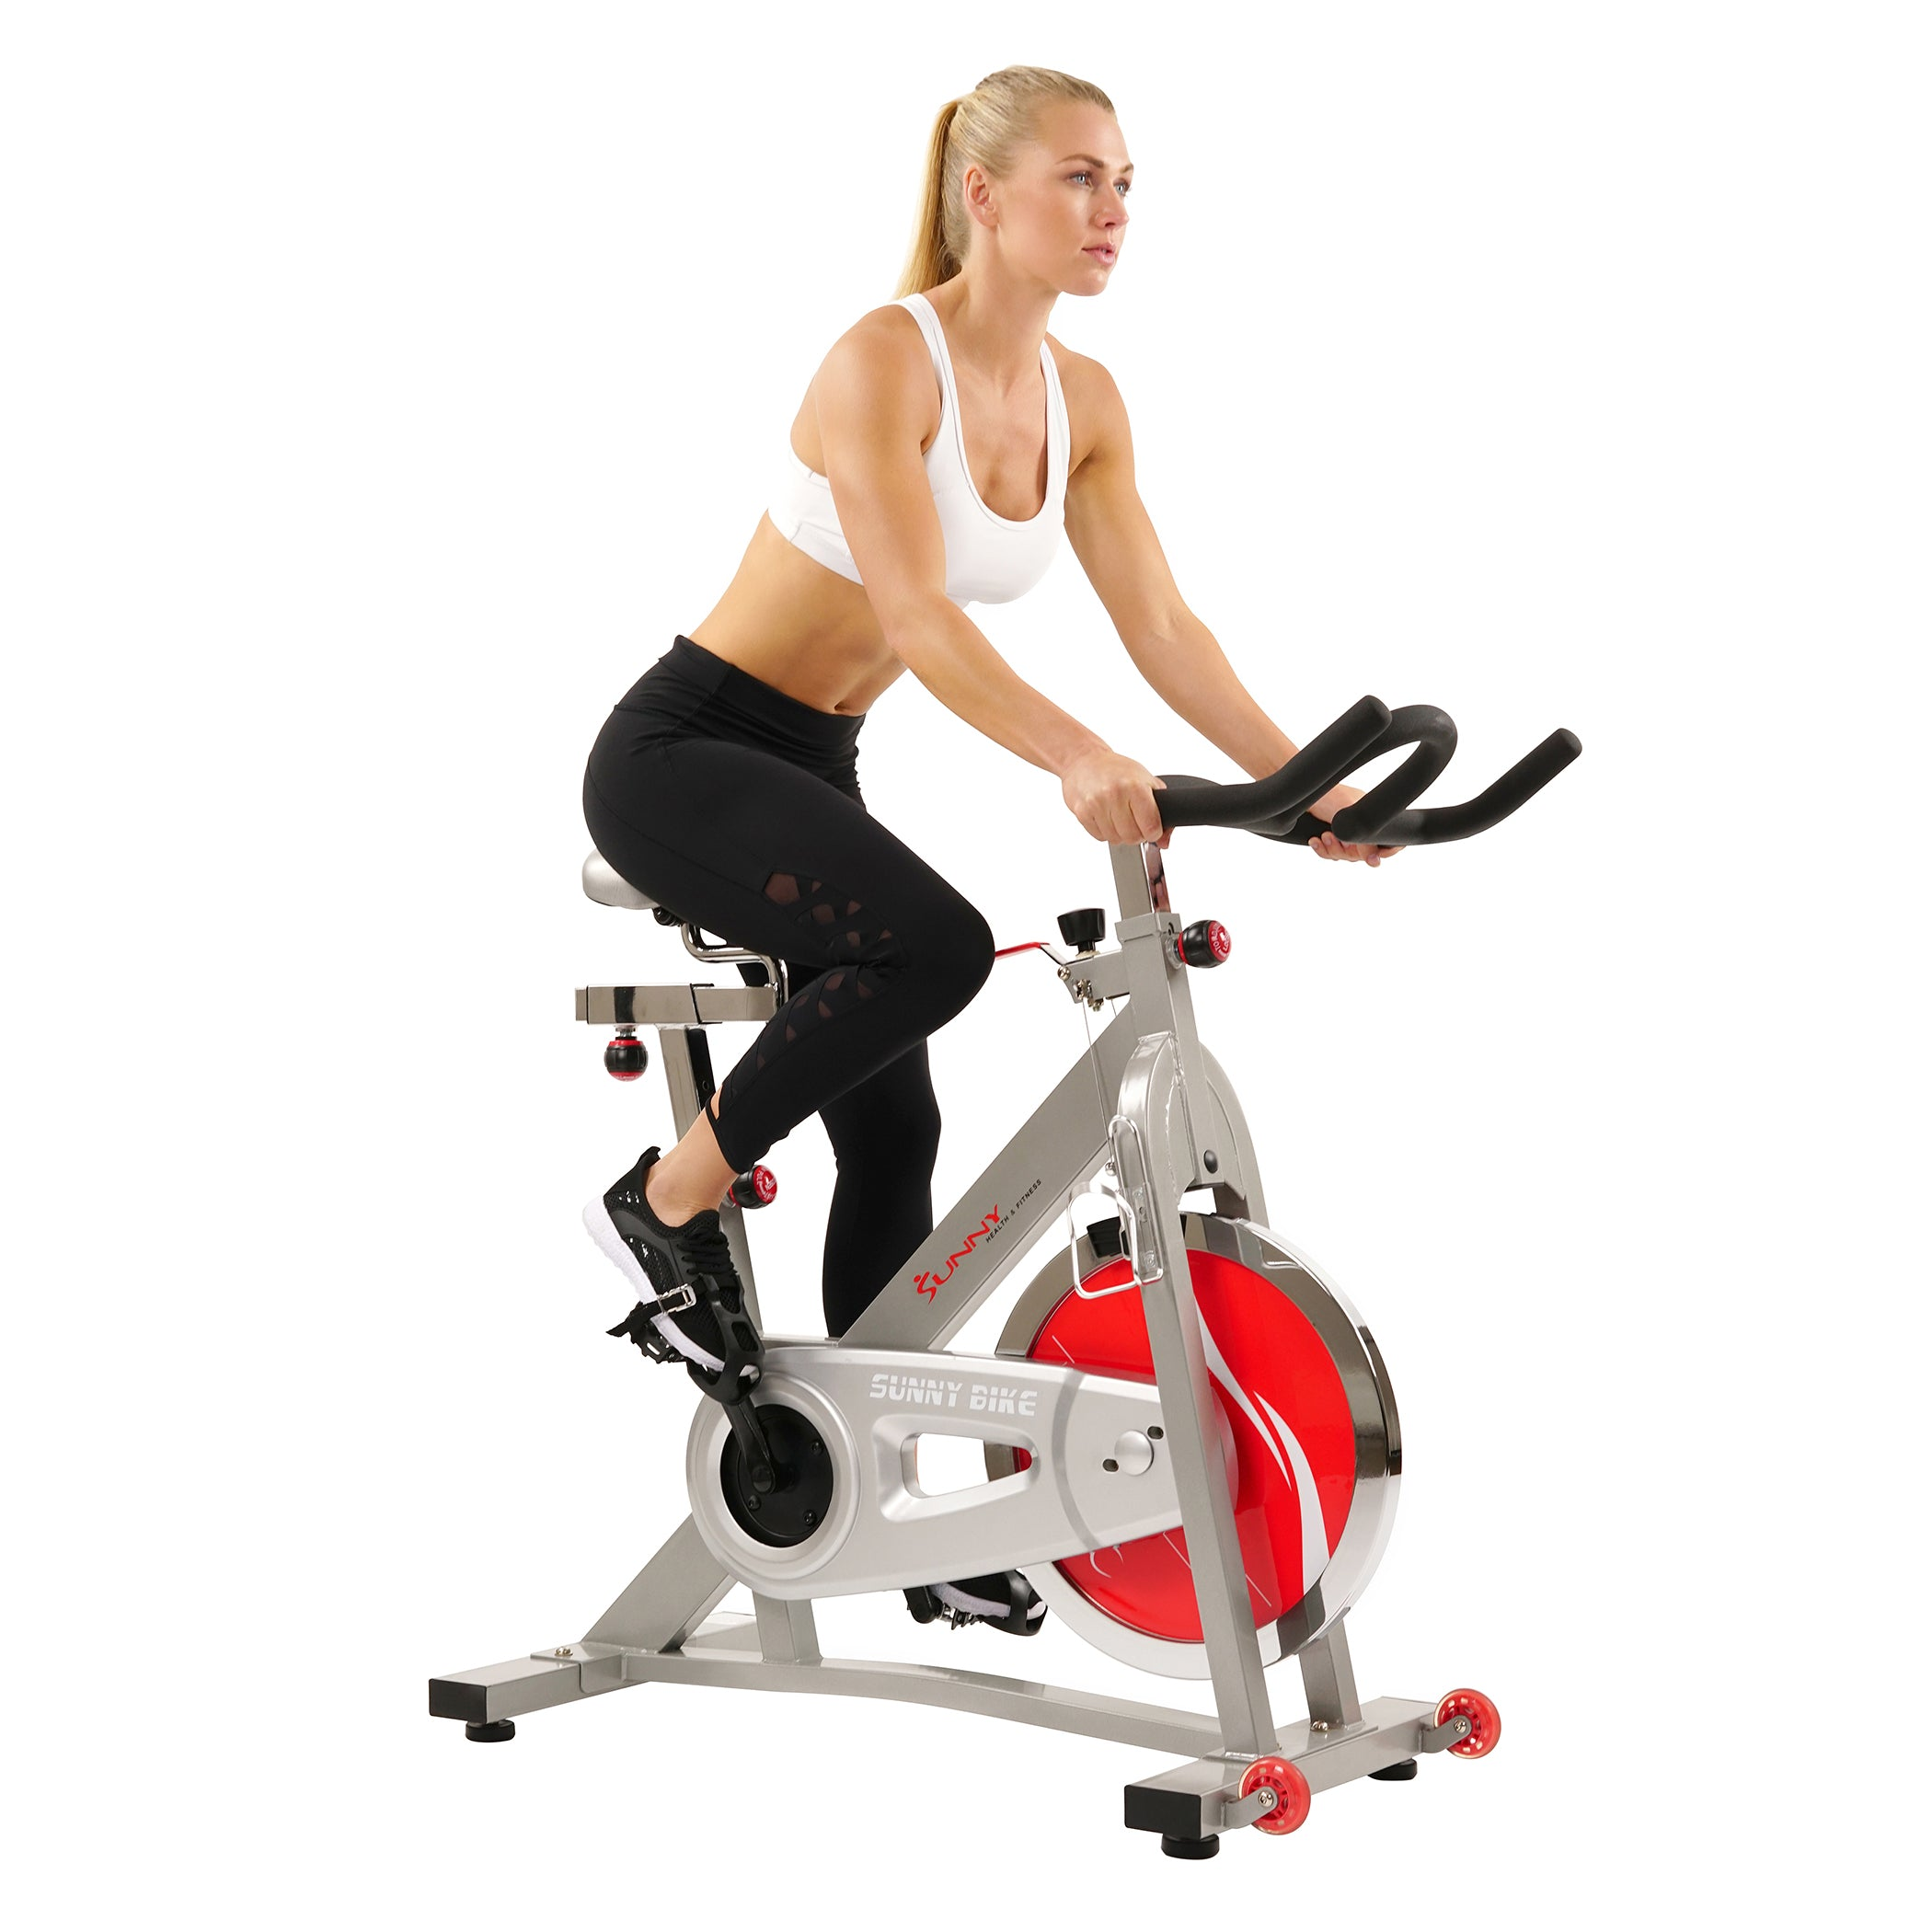 sunny-health-fitness-bikes-40lb-flywheel-belt-drive-pro-indoor-cycling-exercise-bike-SF-B901B-belt-drive